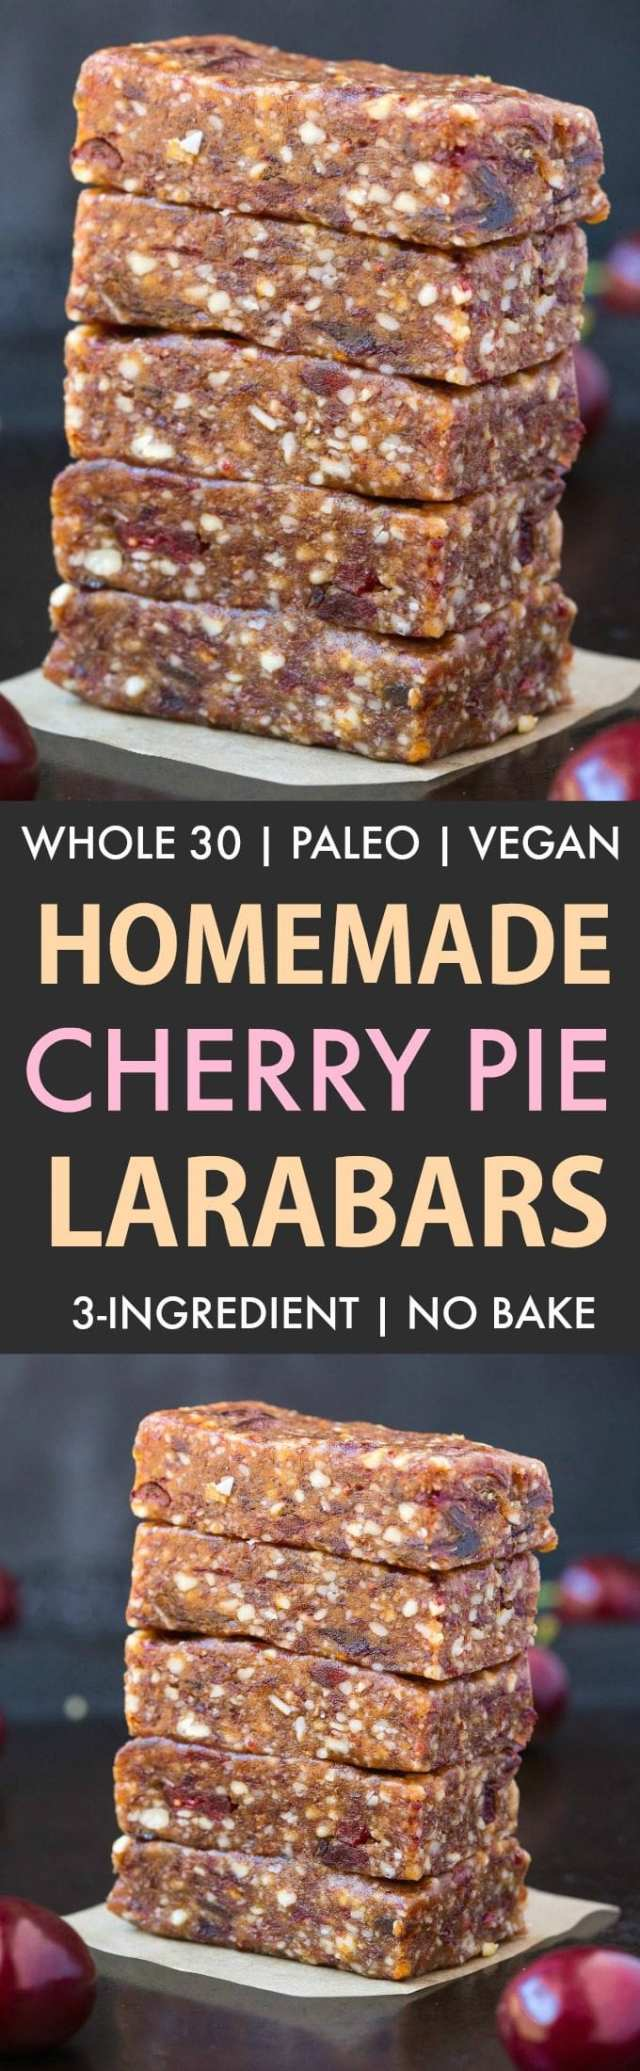 Homemade Cherry Pie Larabars (Whole30, Paleo, Vegan, Gluten Free) These homemade Larabars are cheaper than store-bought and take minutes to whip up! Made with just 3 Ingredients and whole30 approved! (vegan, whole 30, dairy free, refined sugar free)- #whole30 #vegan #whole30approved   Recipe on thebigmansworld.com